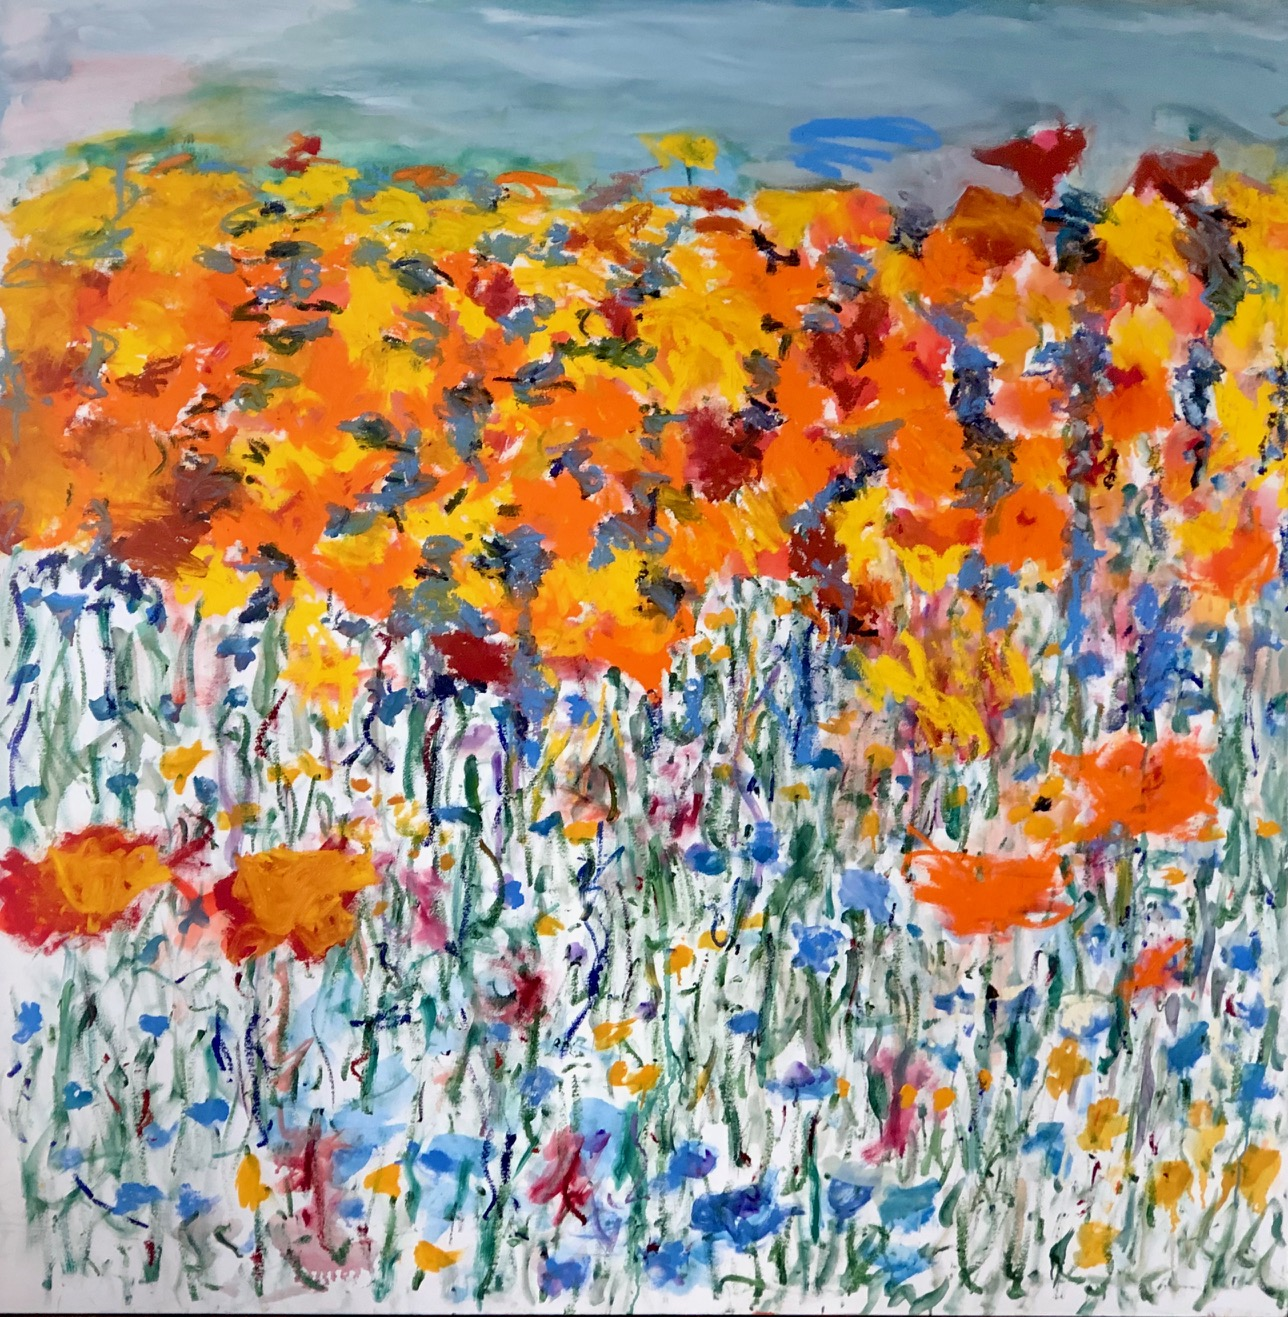 Kristine Flannery_ Wildflowers_Rebirth After Fire - Oil on Hard Board 60 x 60.jpg